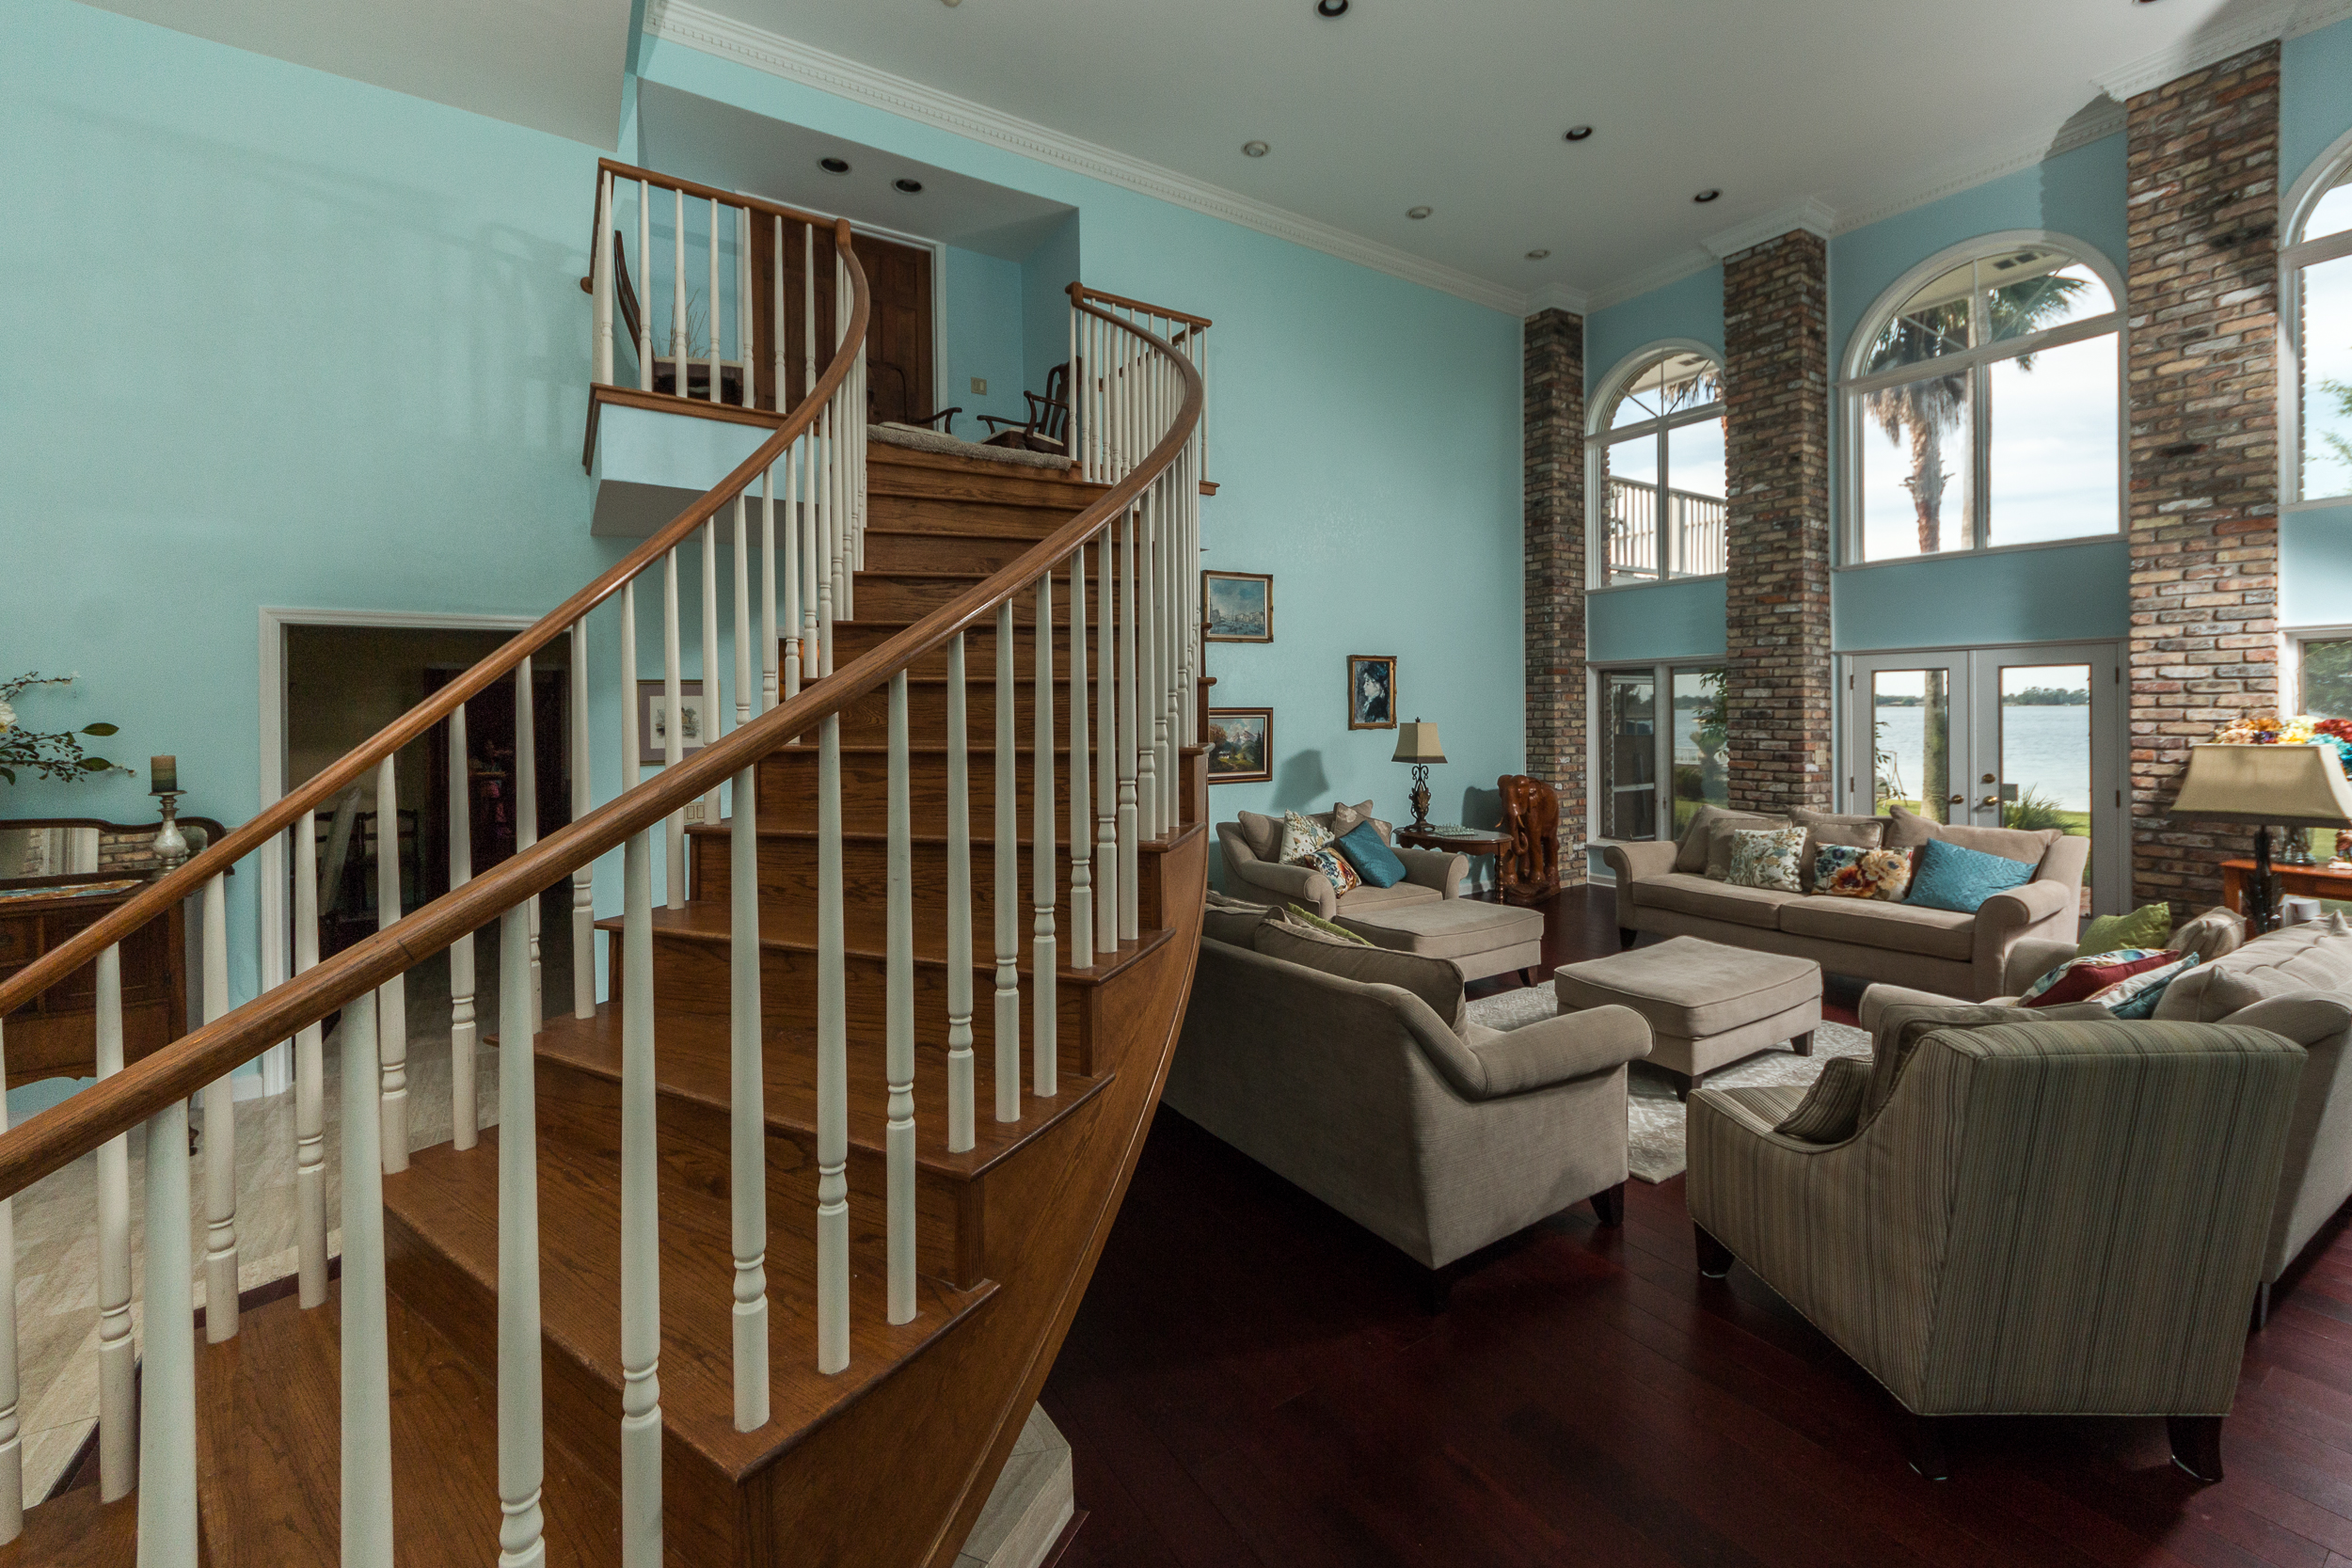 Brazilian Cherry Rouge Flooring in Living Room with Stairs